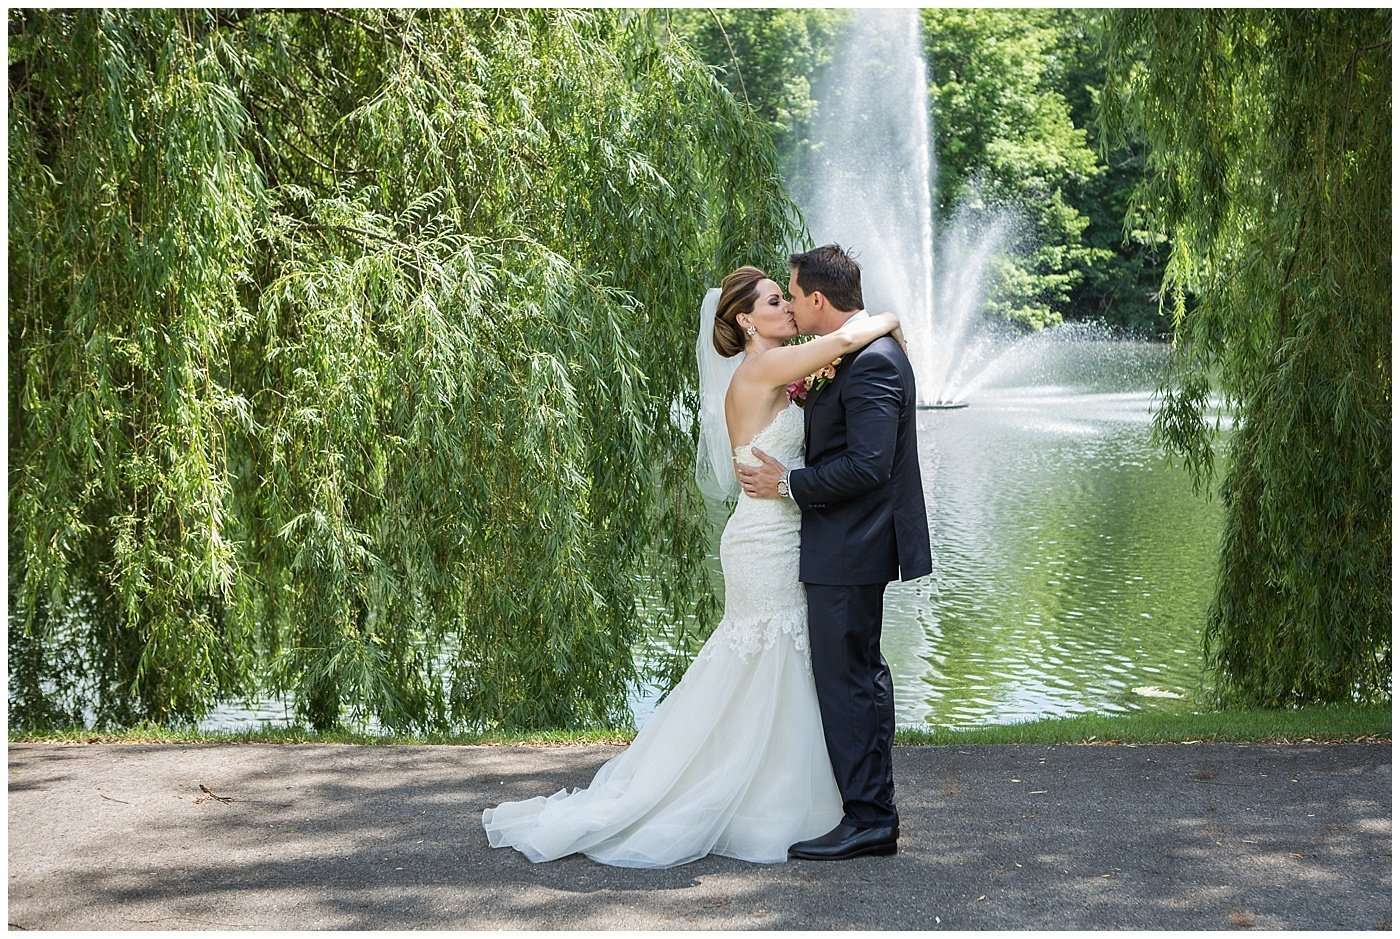 Kim & Lee | A Summer Wedding at Brookside Country Club 50